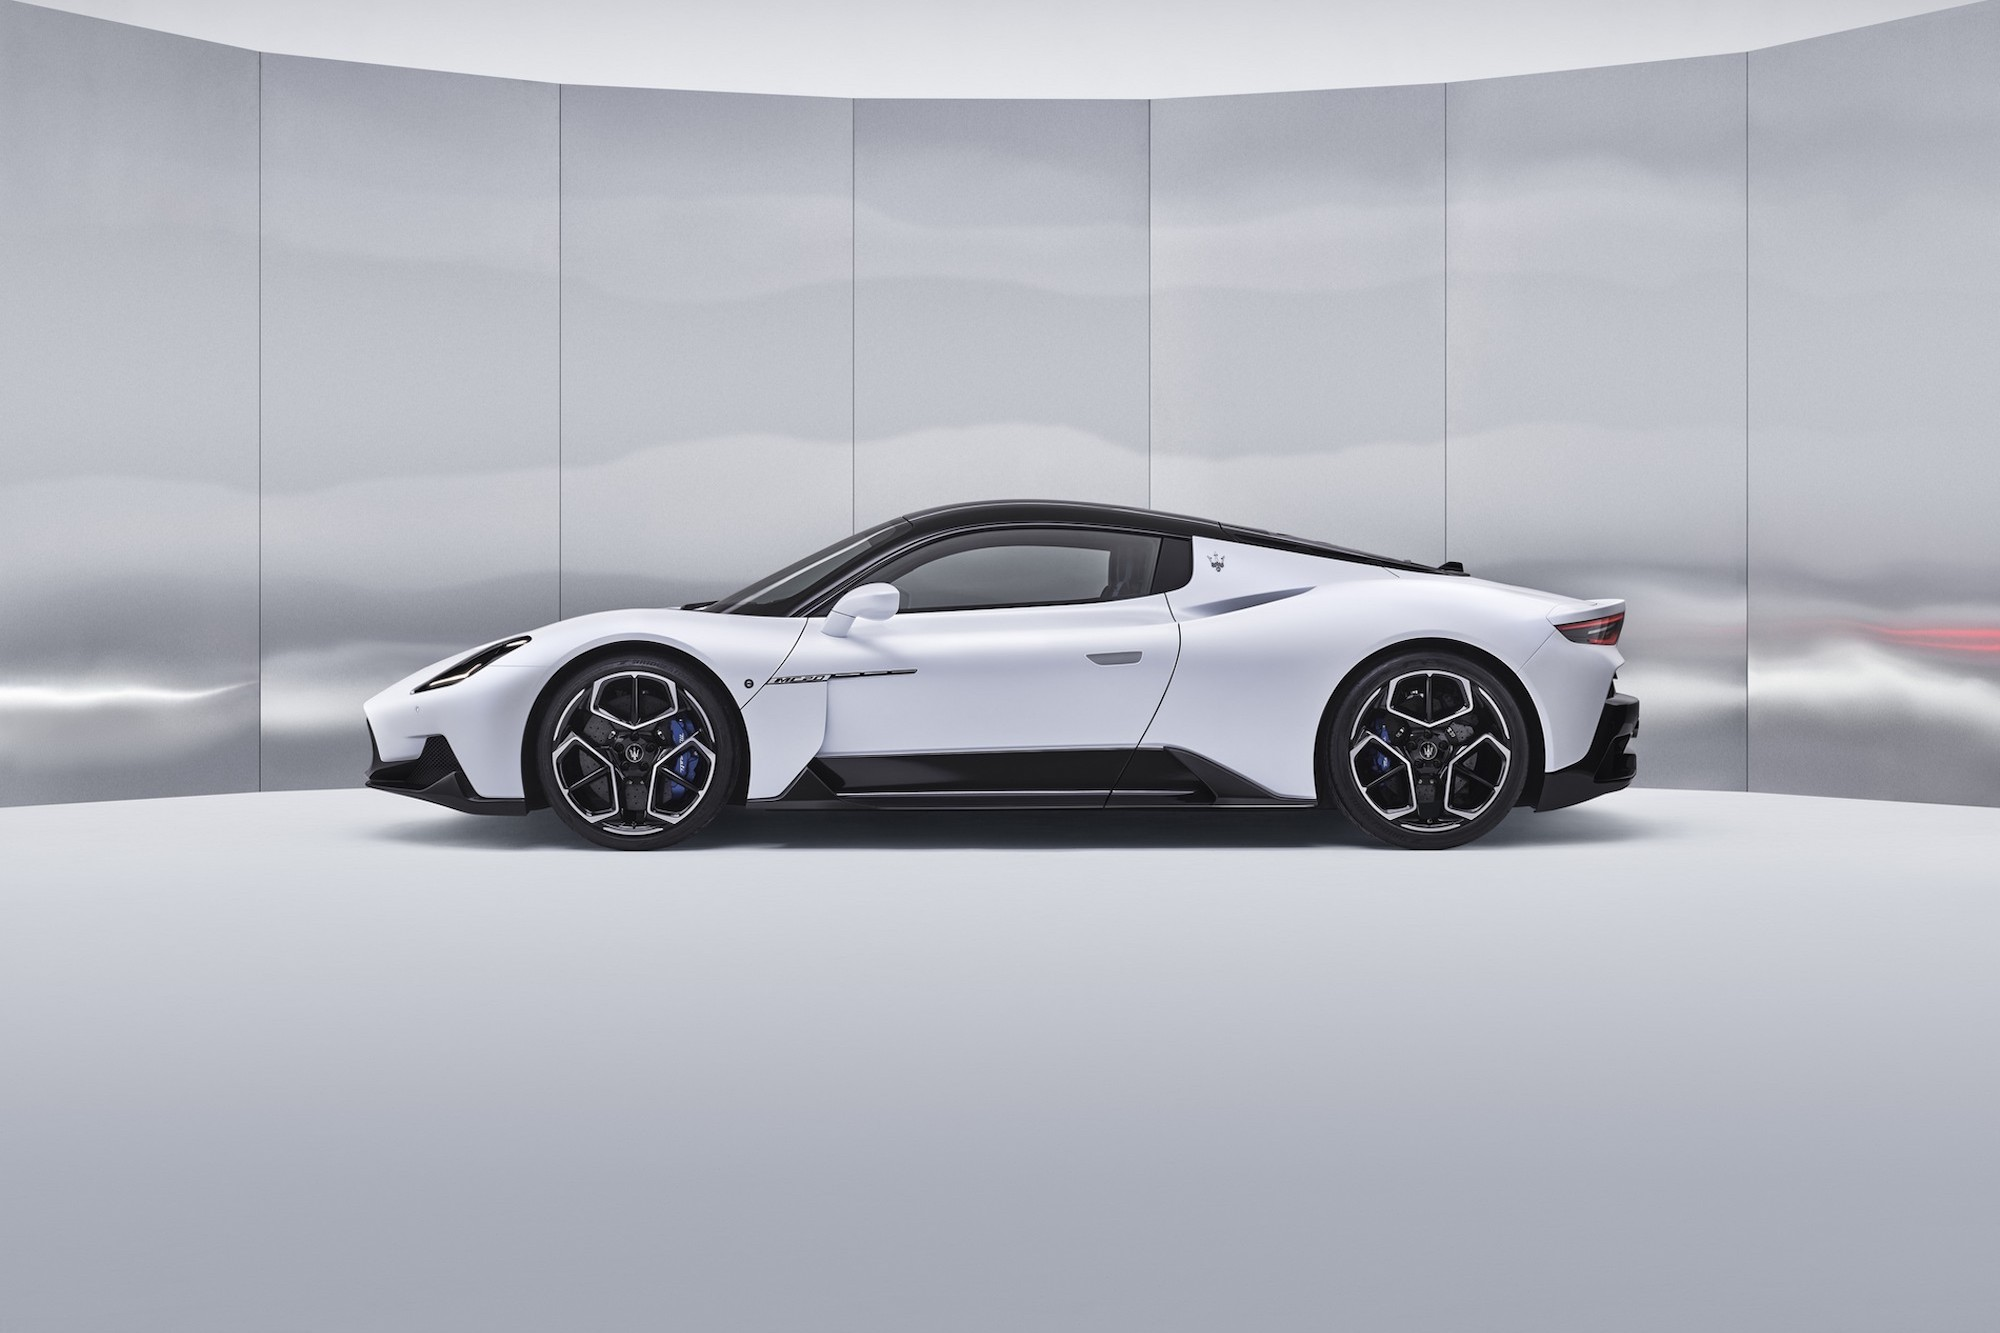 The Petrolhead Corner - Some of the Most Anticipated New Cars of 2021